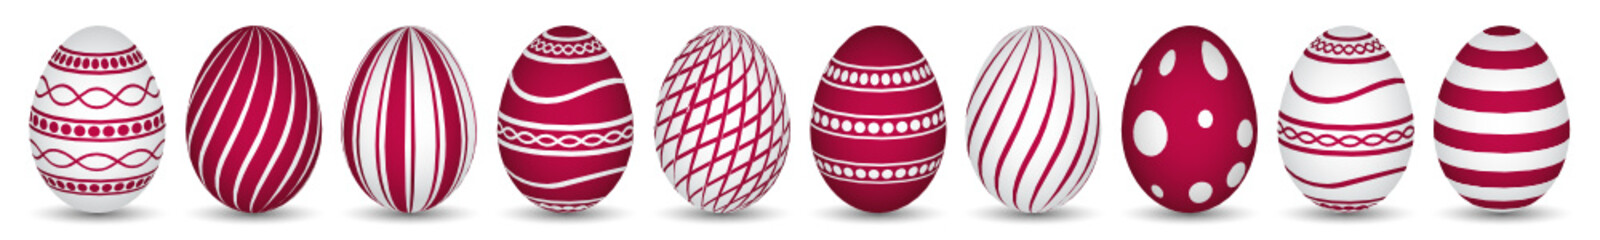 10 easter eggs in red